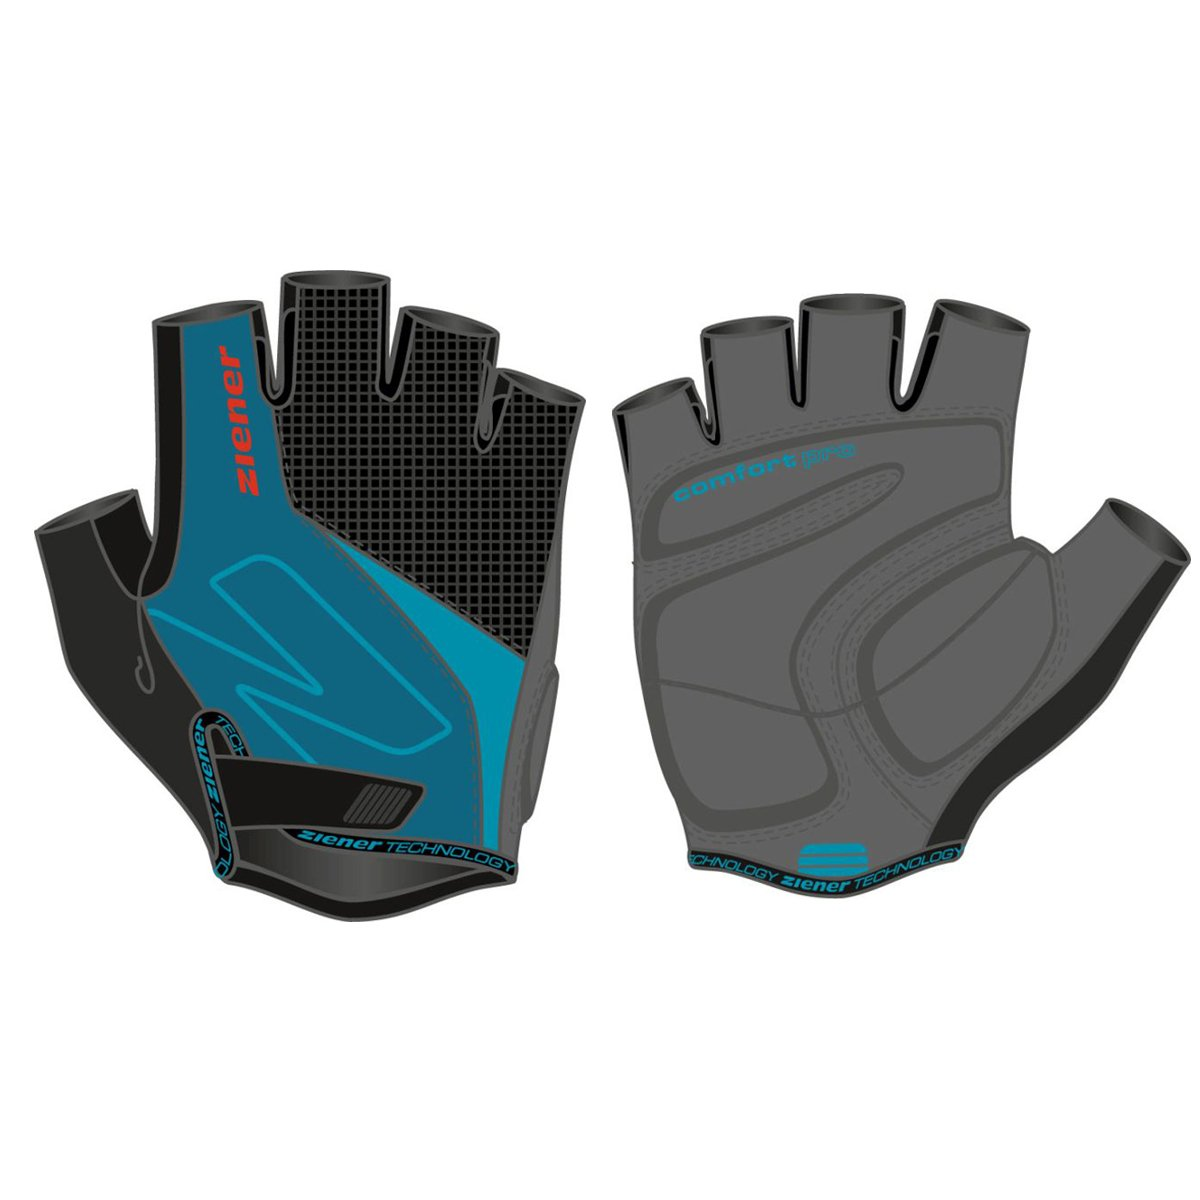 Motorcycle gloves to prevent numbness - Ziener Crave Steel Blue New 2017 Gloves Motorcycle Gloves Cycling Gloves Amazon Co Uk Sports Outdoors